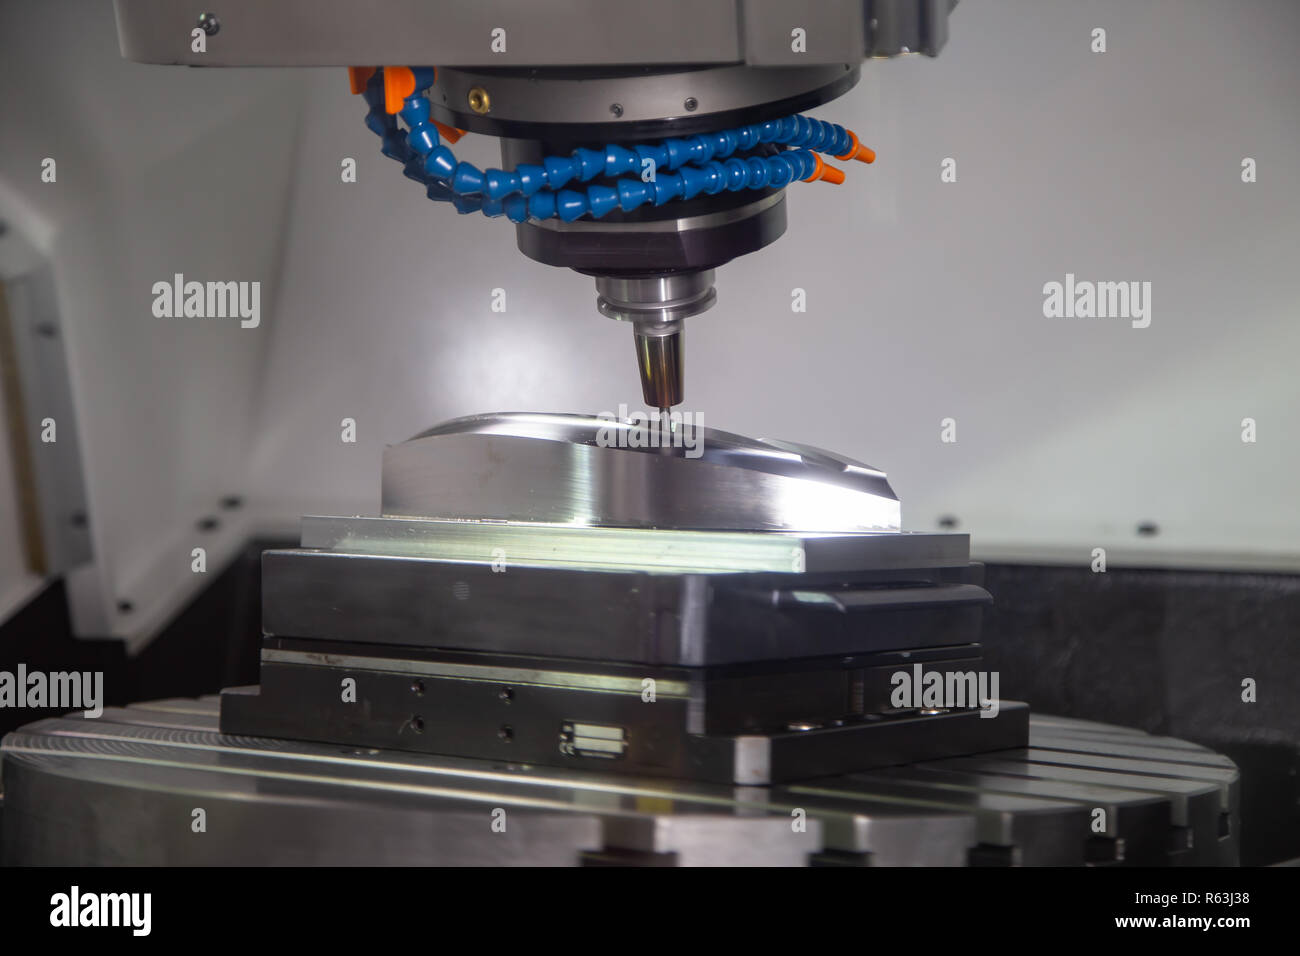 CNC milling machine cutting workpiece, industrial machining - Stock Image